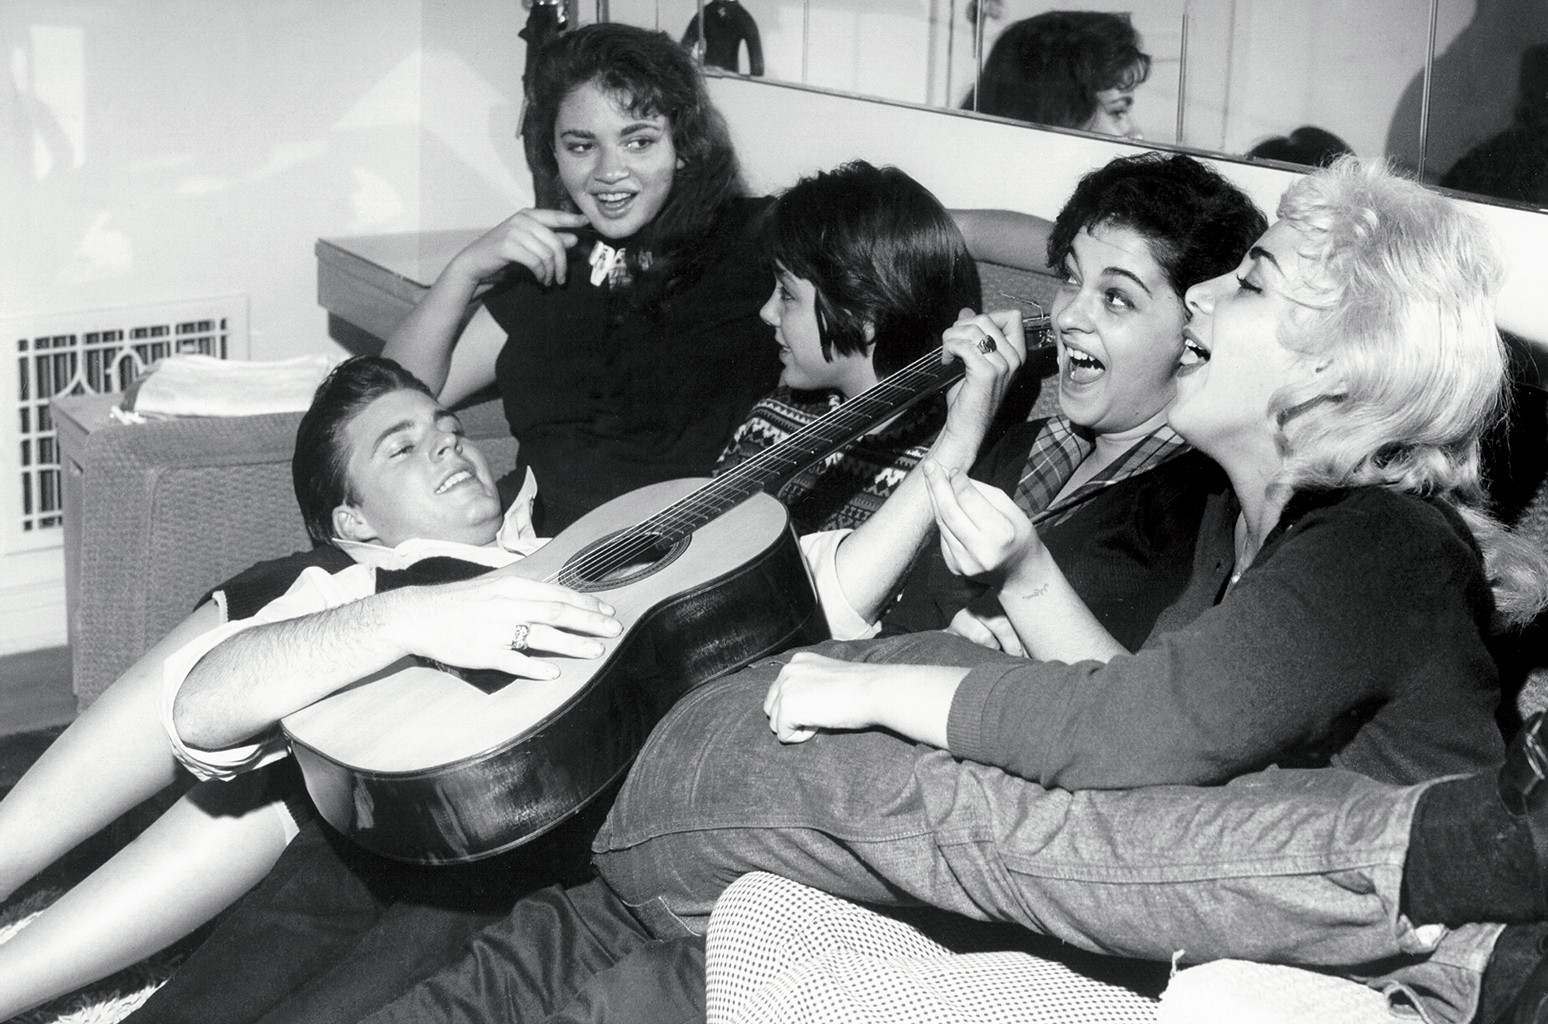 Nelson surroundedby fans in Los Angeles circa 1958.